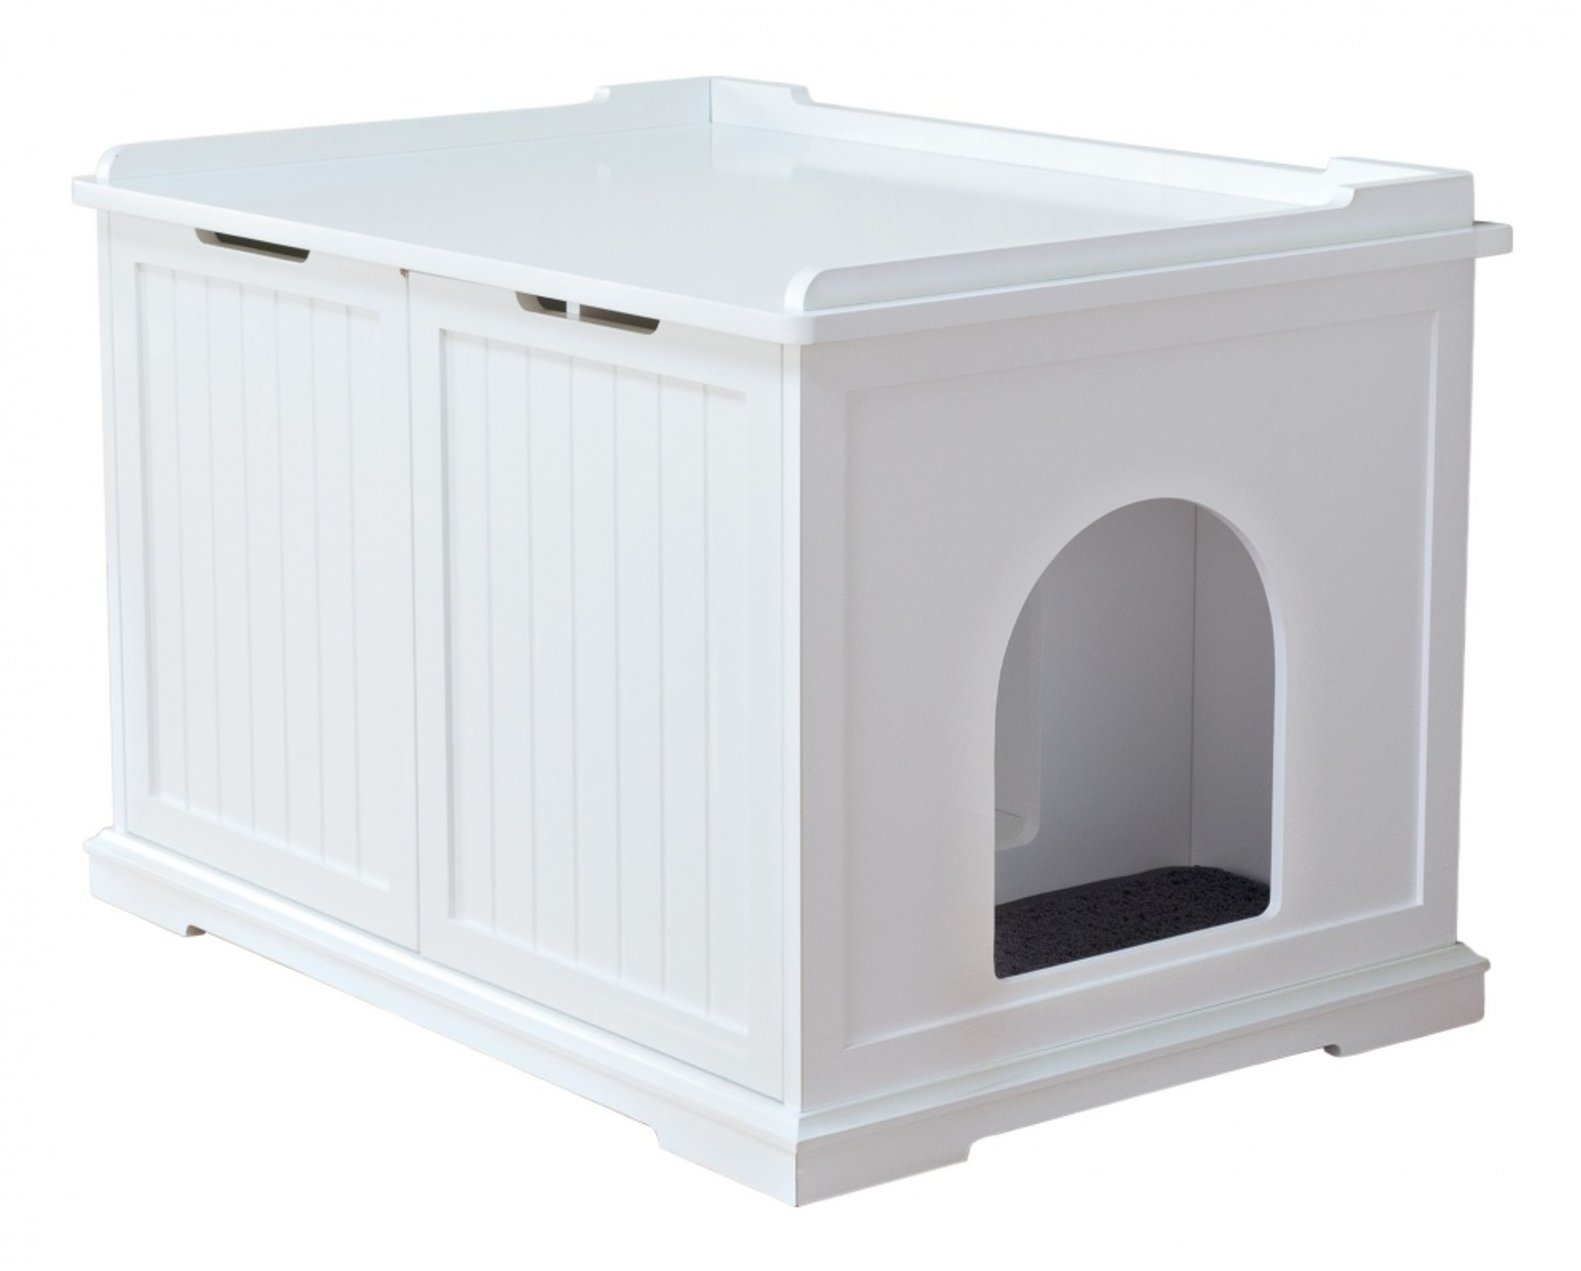 Trixie Pet Products Wooden Pet House X-Large and Litter Box, White by Trixie